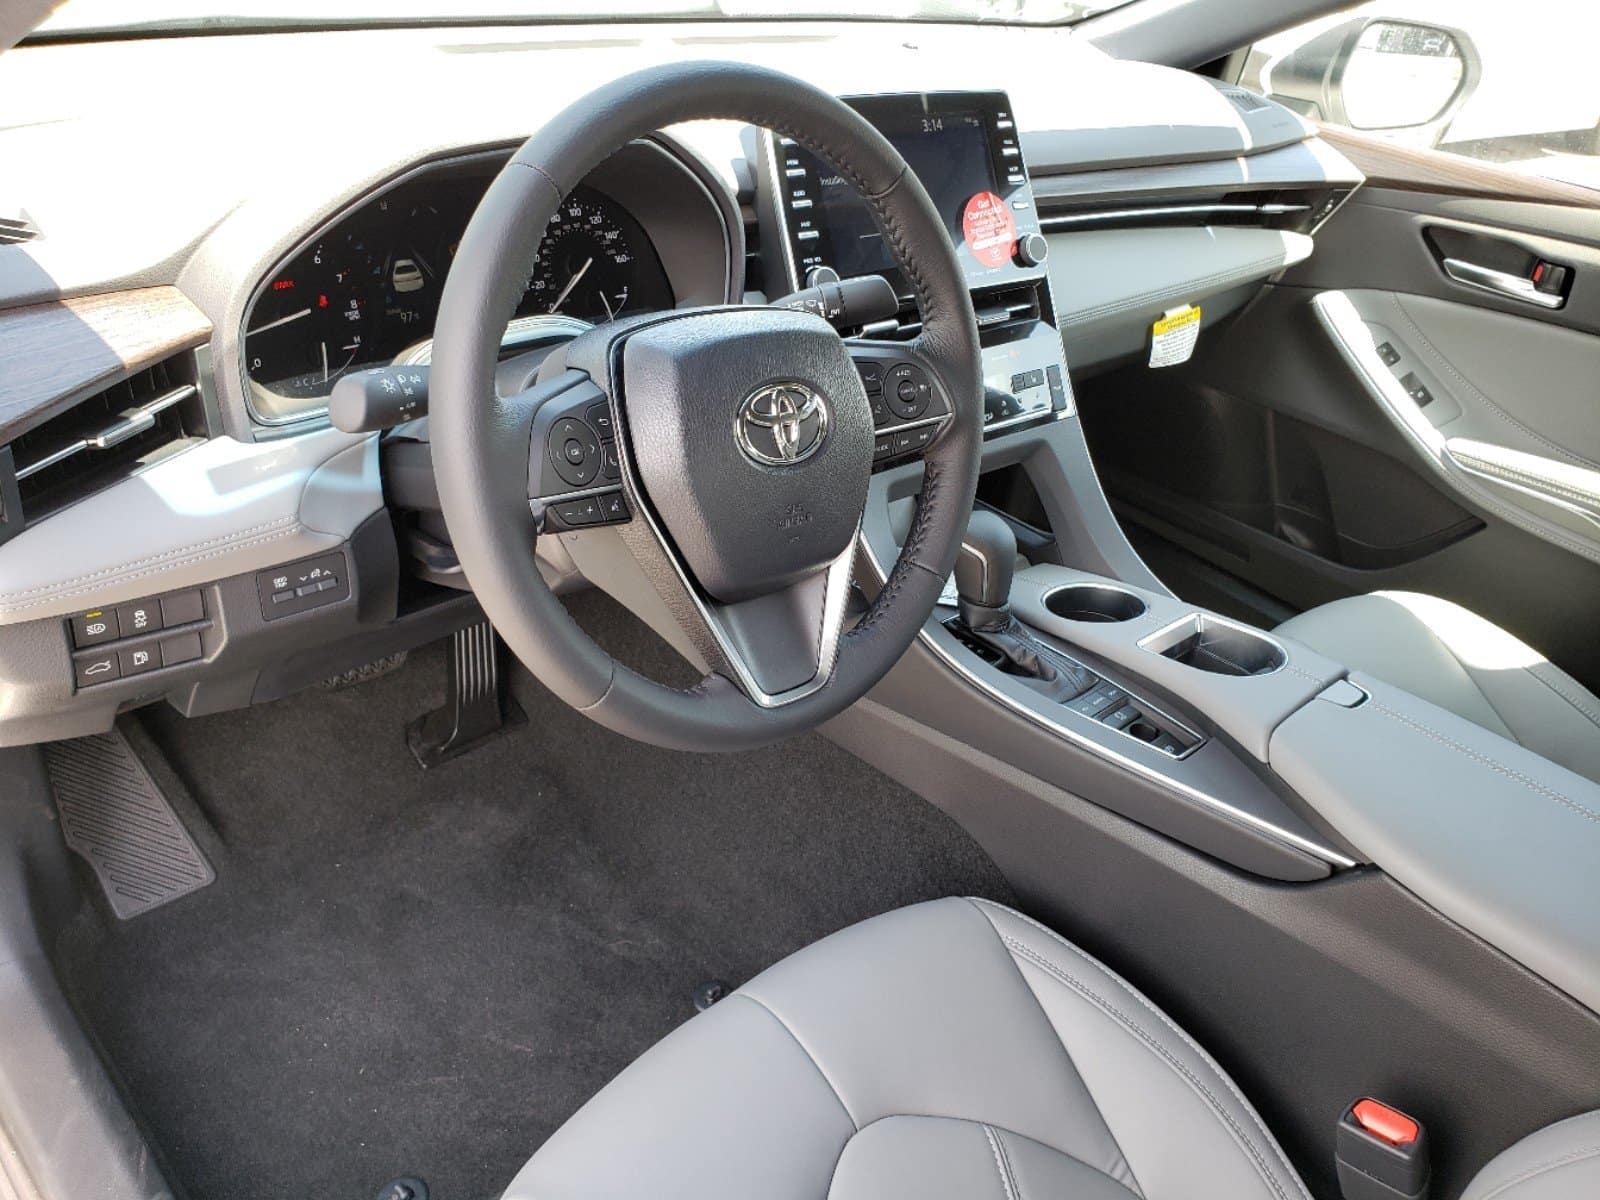 Test drive the new Toyota Avalon.